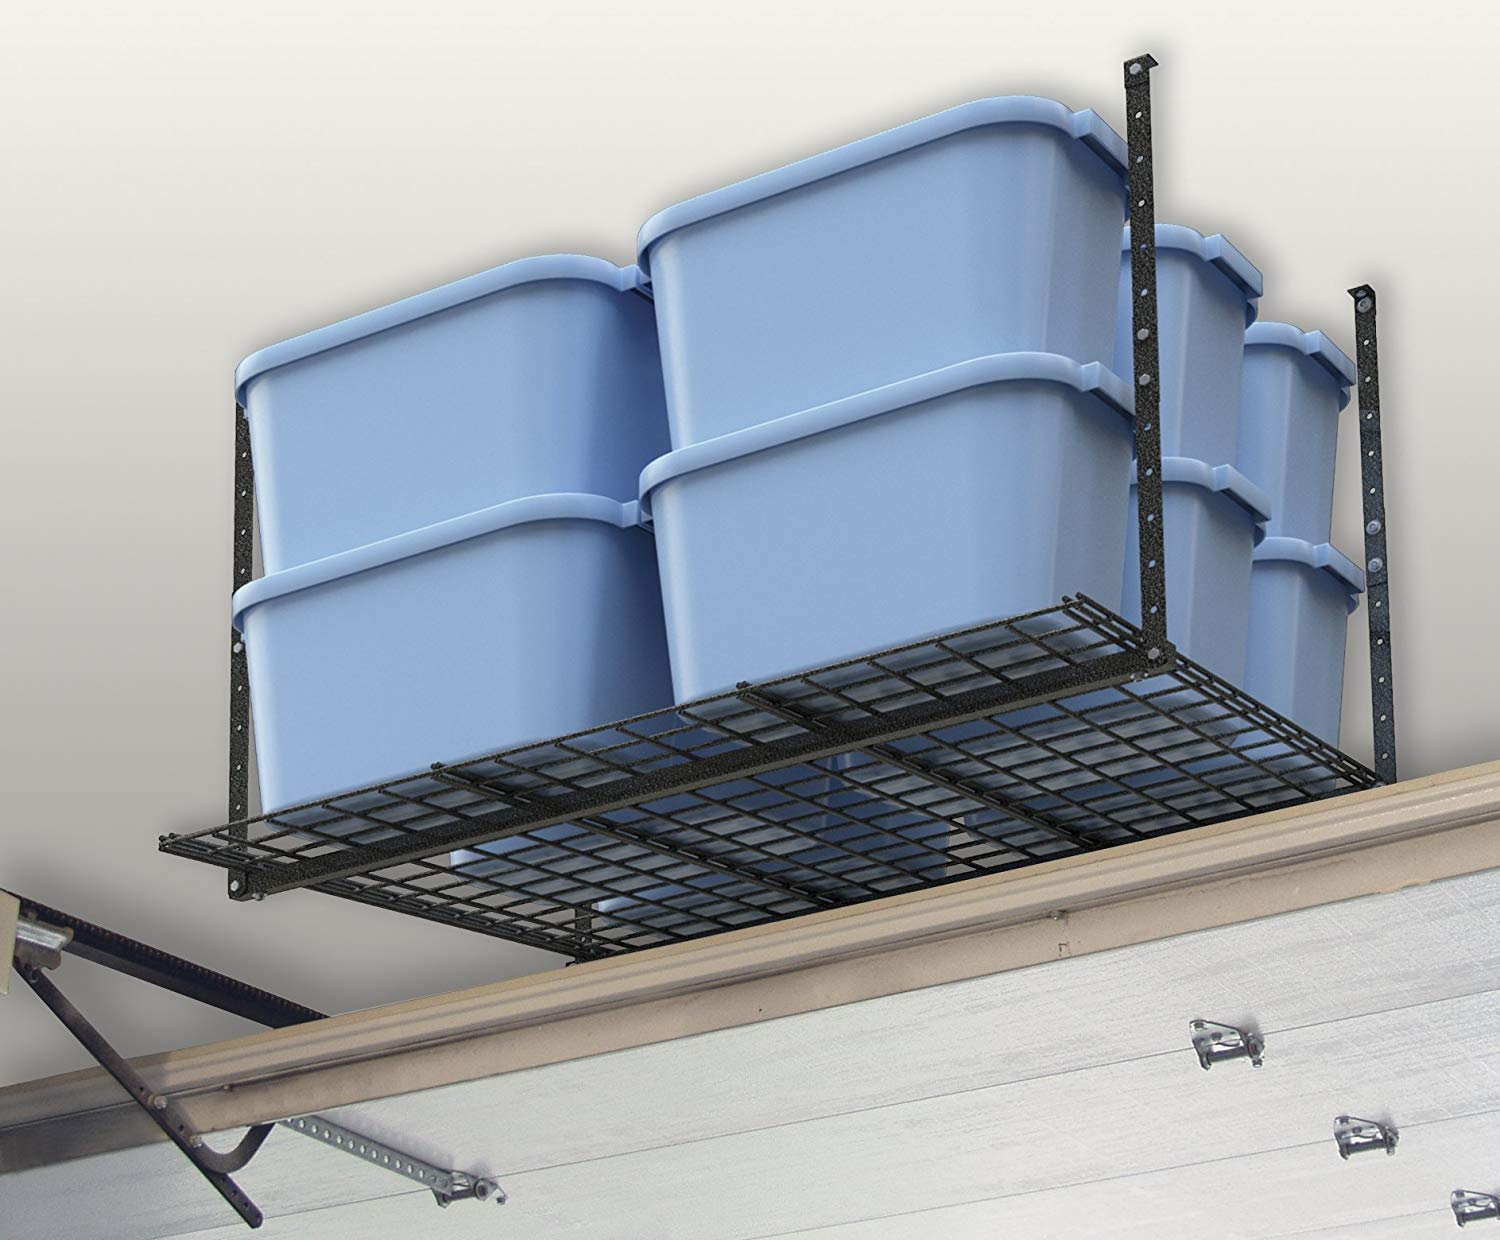 Best small storage racks for garage